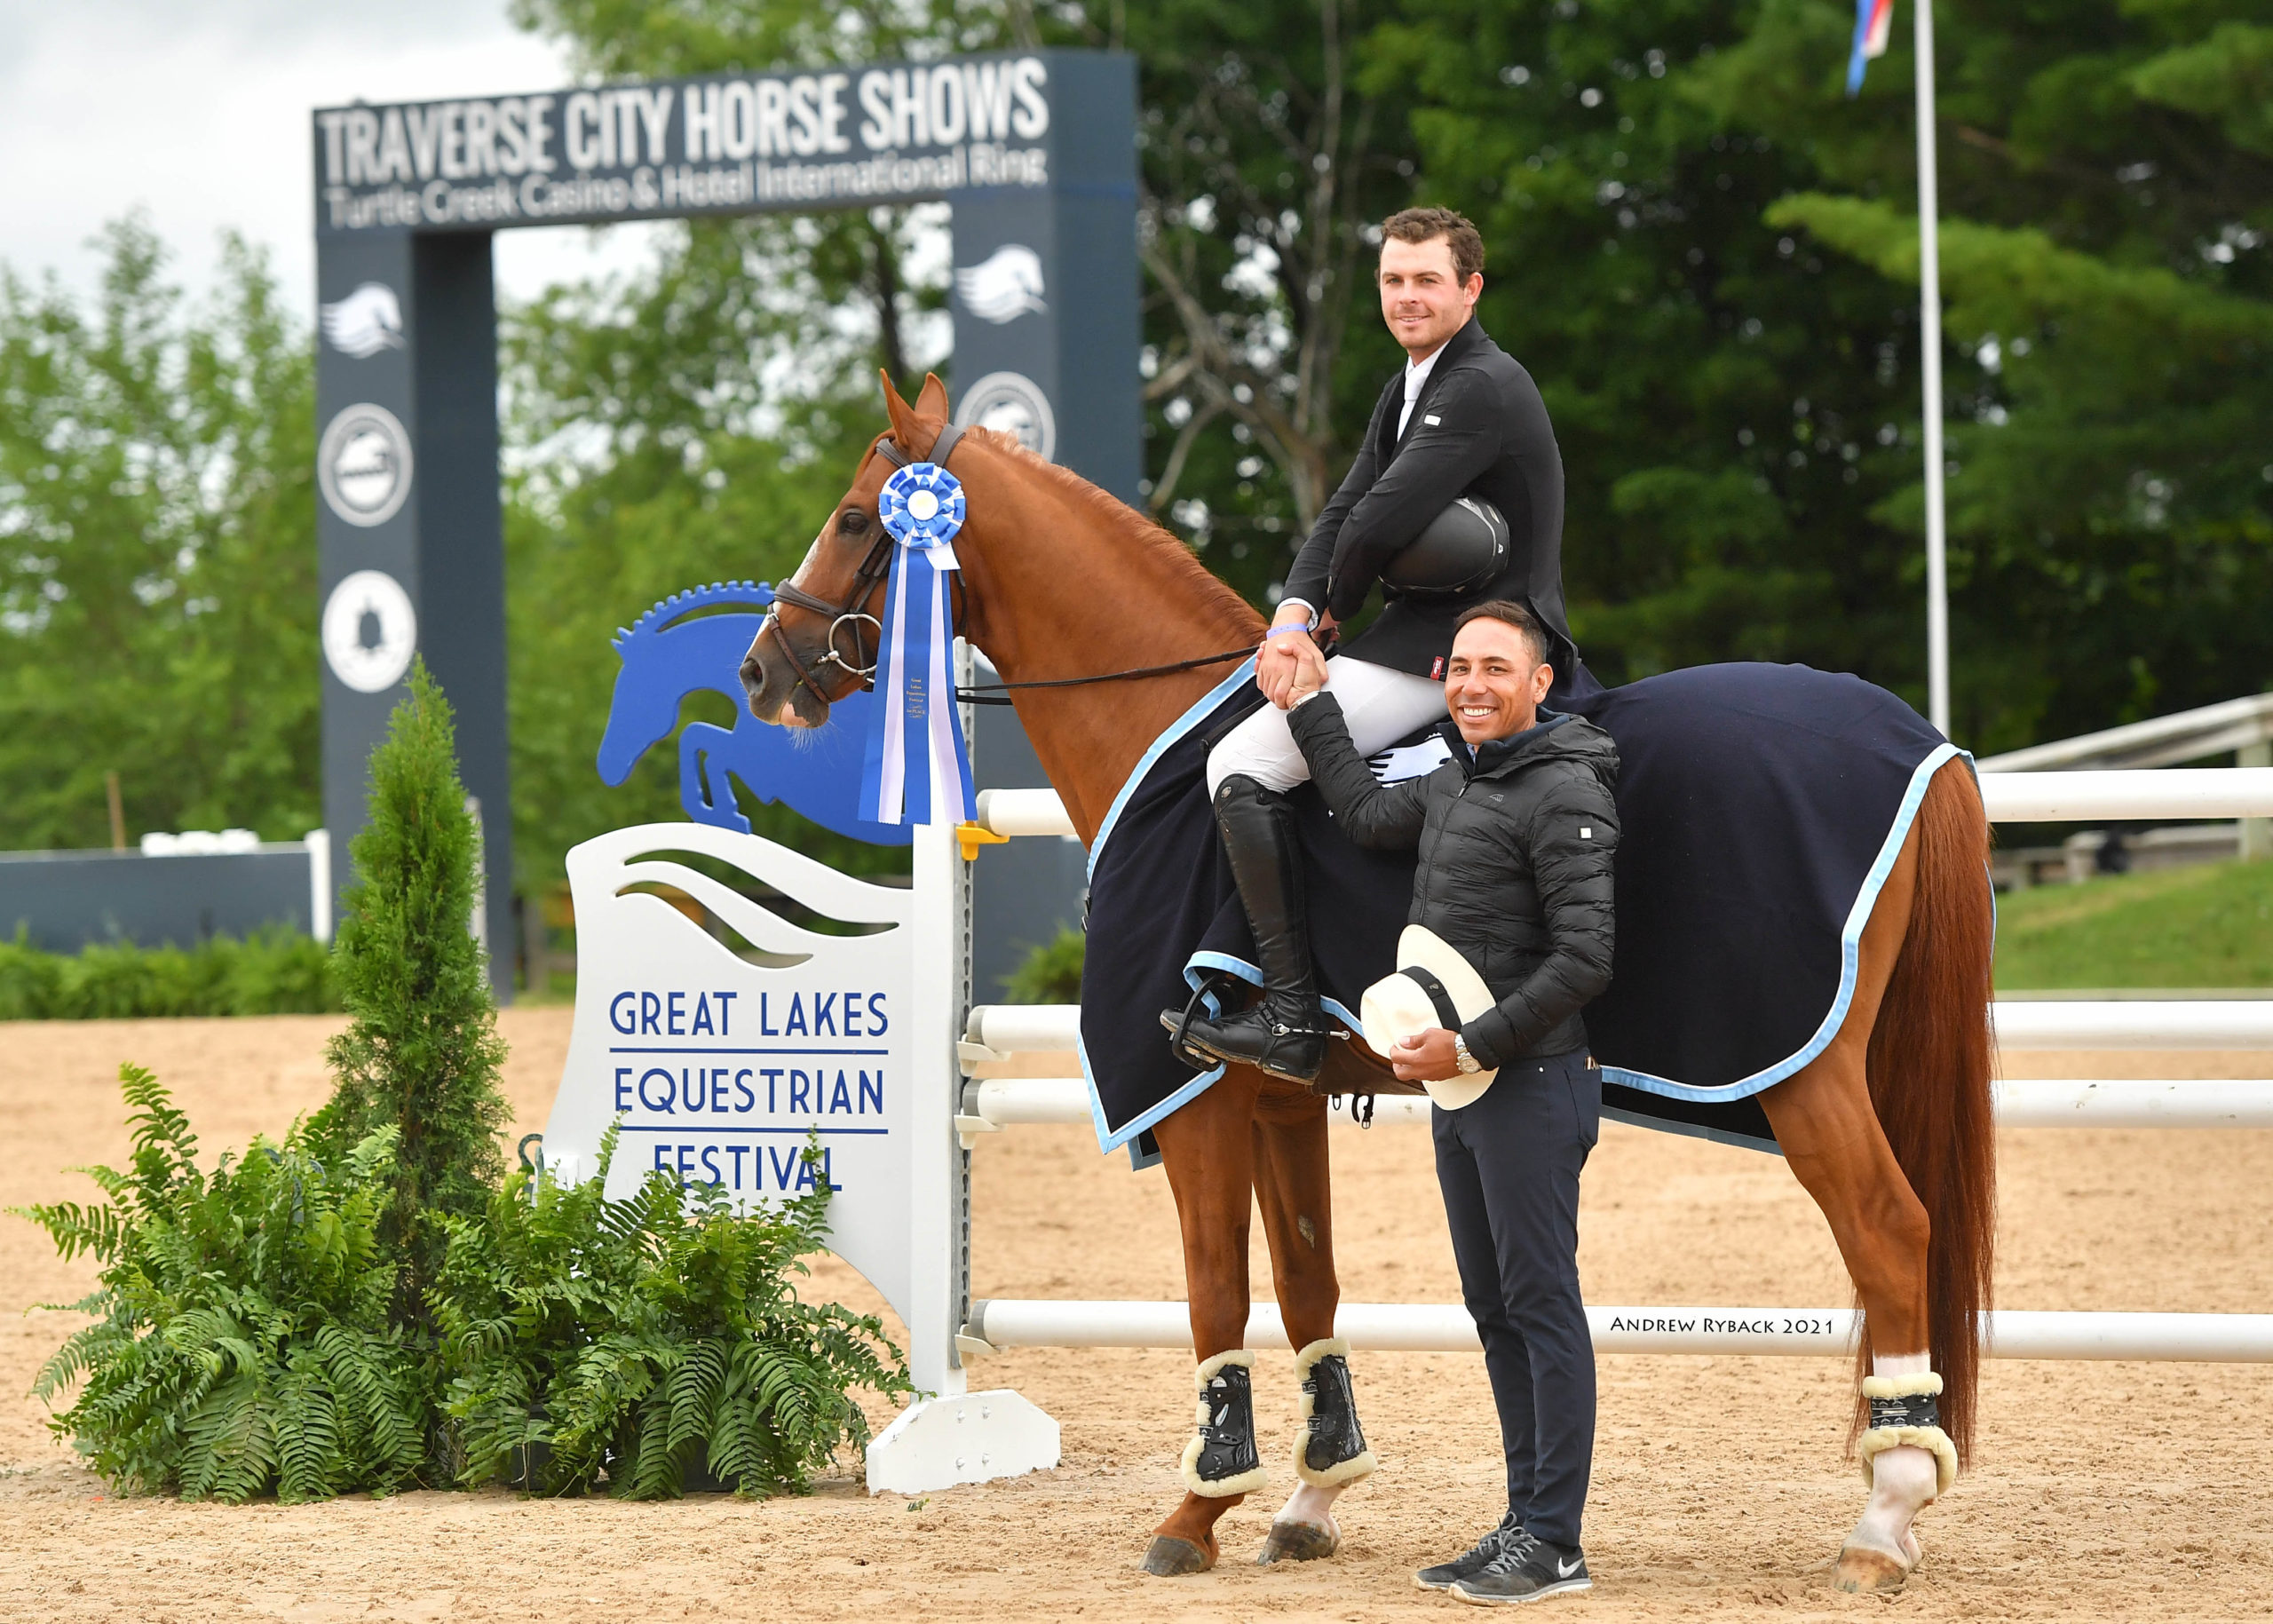 Cormac Hanley and RMF Chacco Top Race to 36.000 Speed Classic CSI3* victory to open Great Lakes Equestrian Festival I